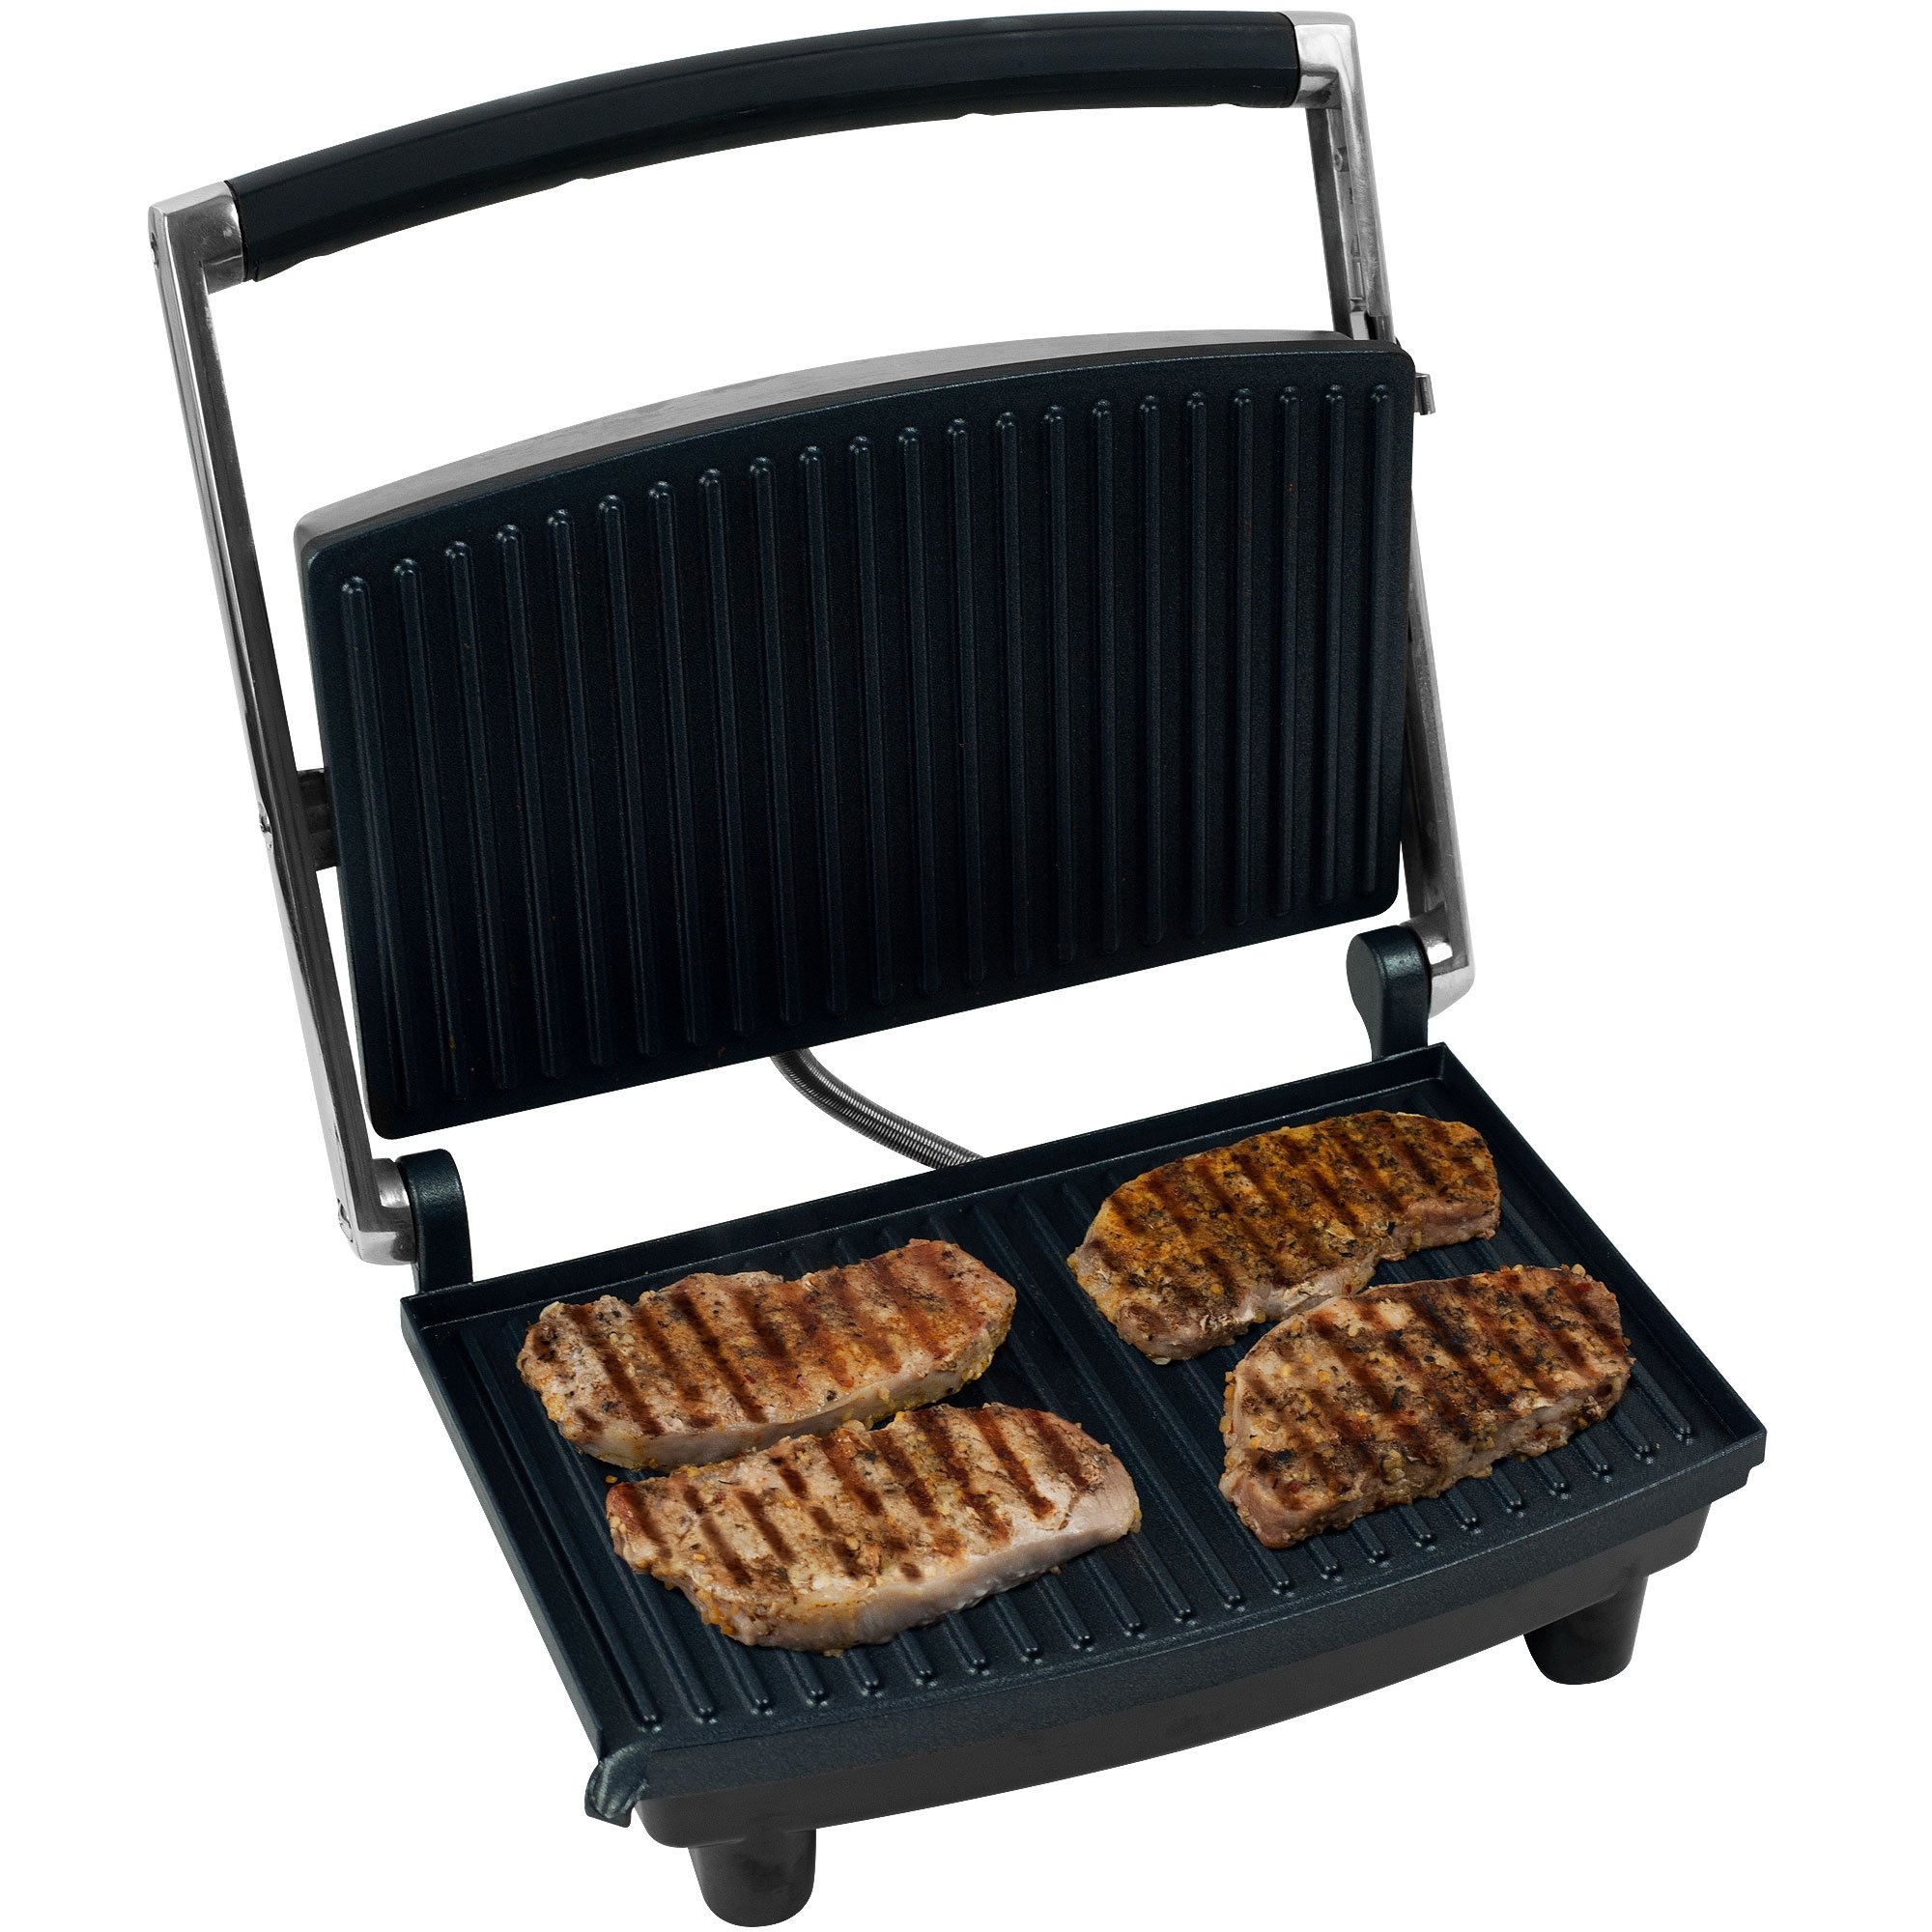 Chef Buddy 80-1840 Panini Press Grill and Gourmet Sandwich Maker for Healthy Cooking by by Chef Buddy